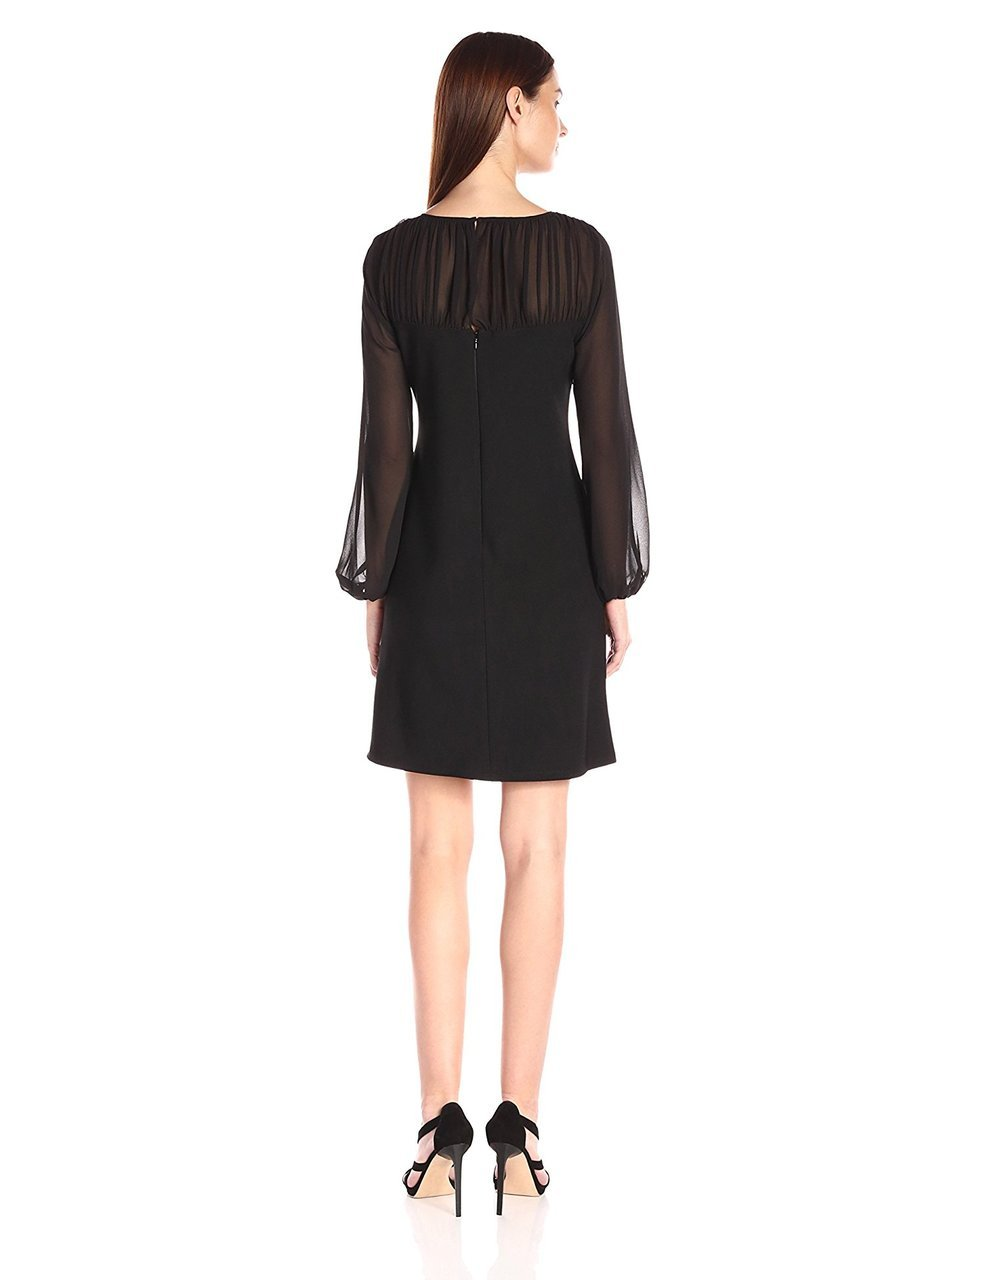 Taylor - Chiffon and Jersey Long Sleeve Dress 5915M in Black